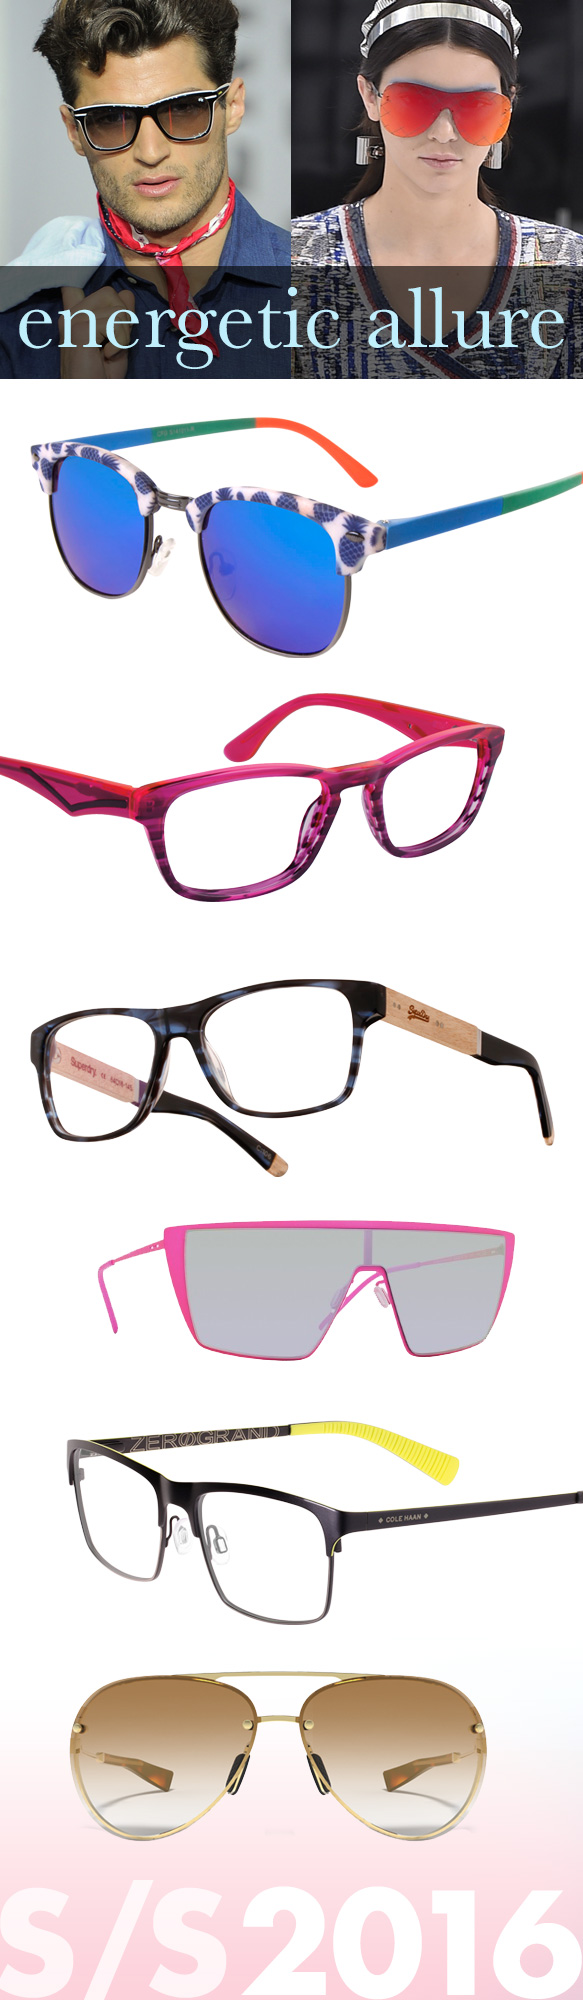 Icon Eyewear (40040), Cantera (Pitch), Superdry (Oxley), Italia Independent (0215), Cole Haan (CH4010), Under Armour (Double Down)